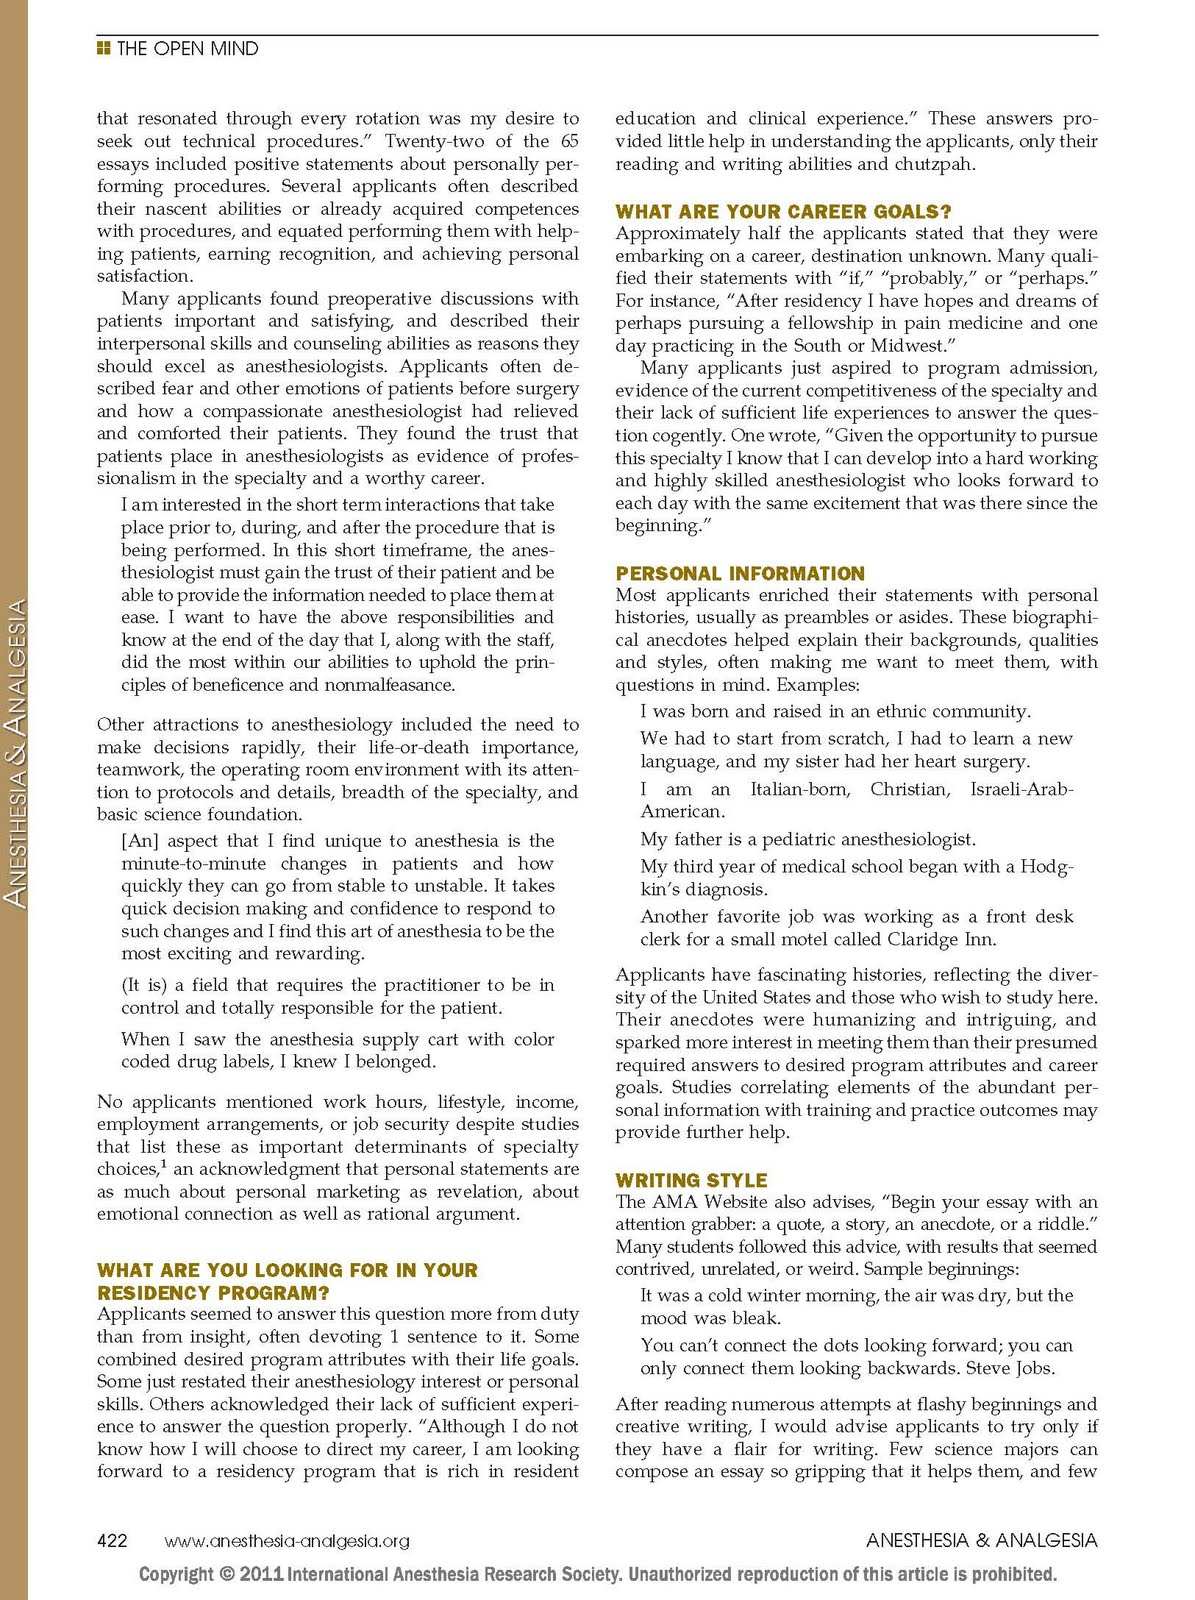 Society for Education in Anesthesia Medical Student Guide to